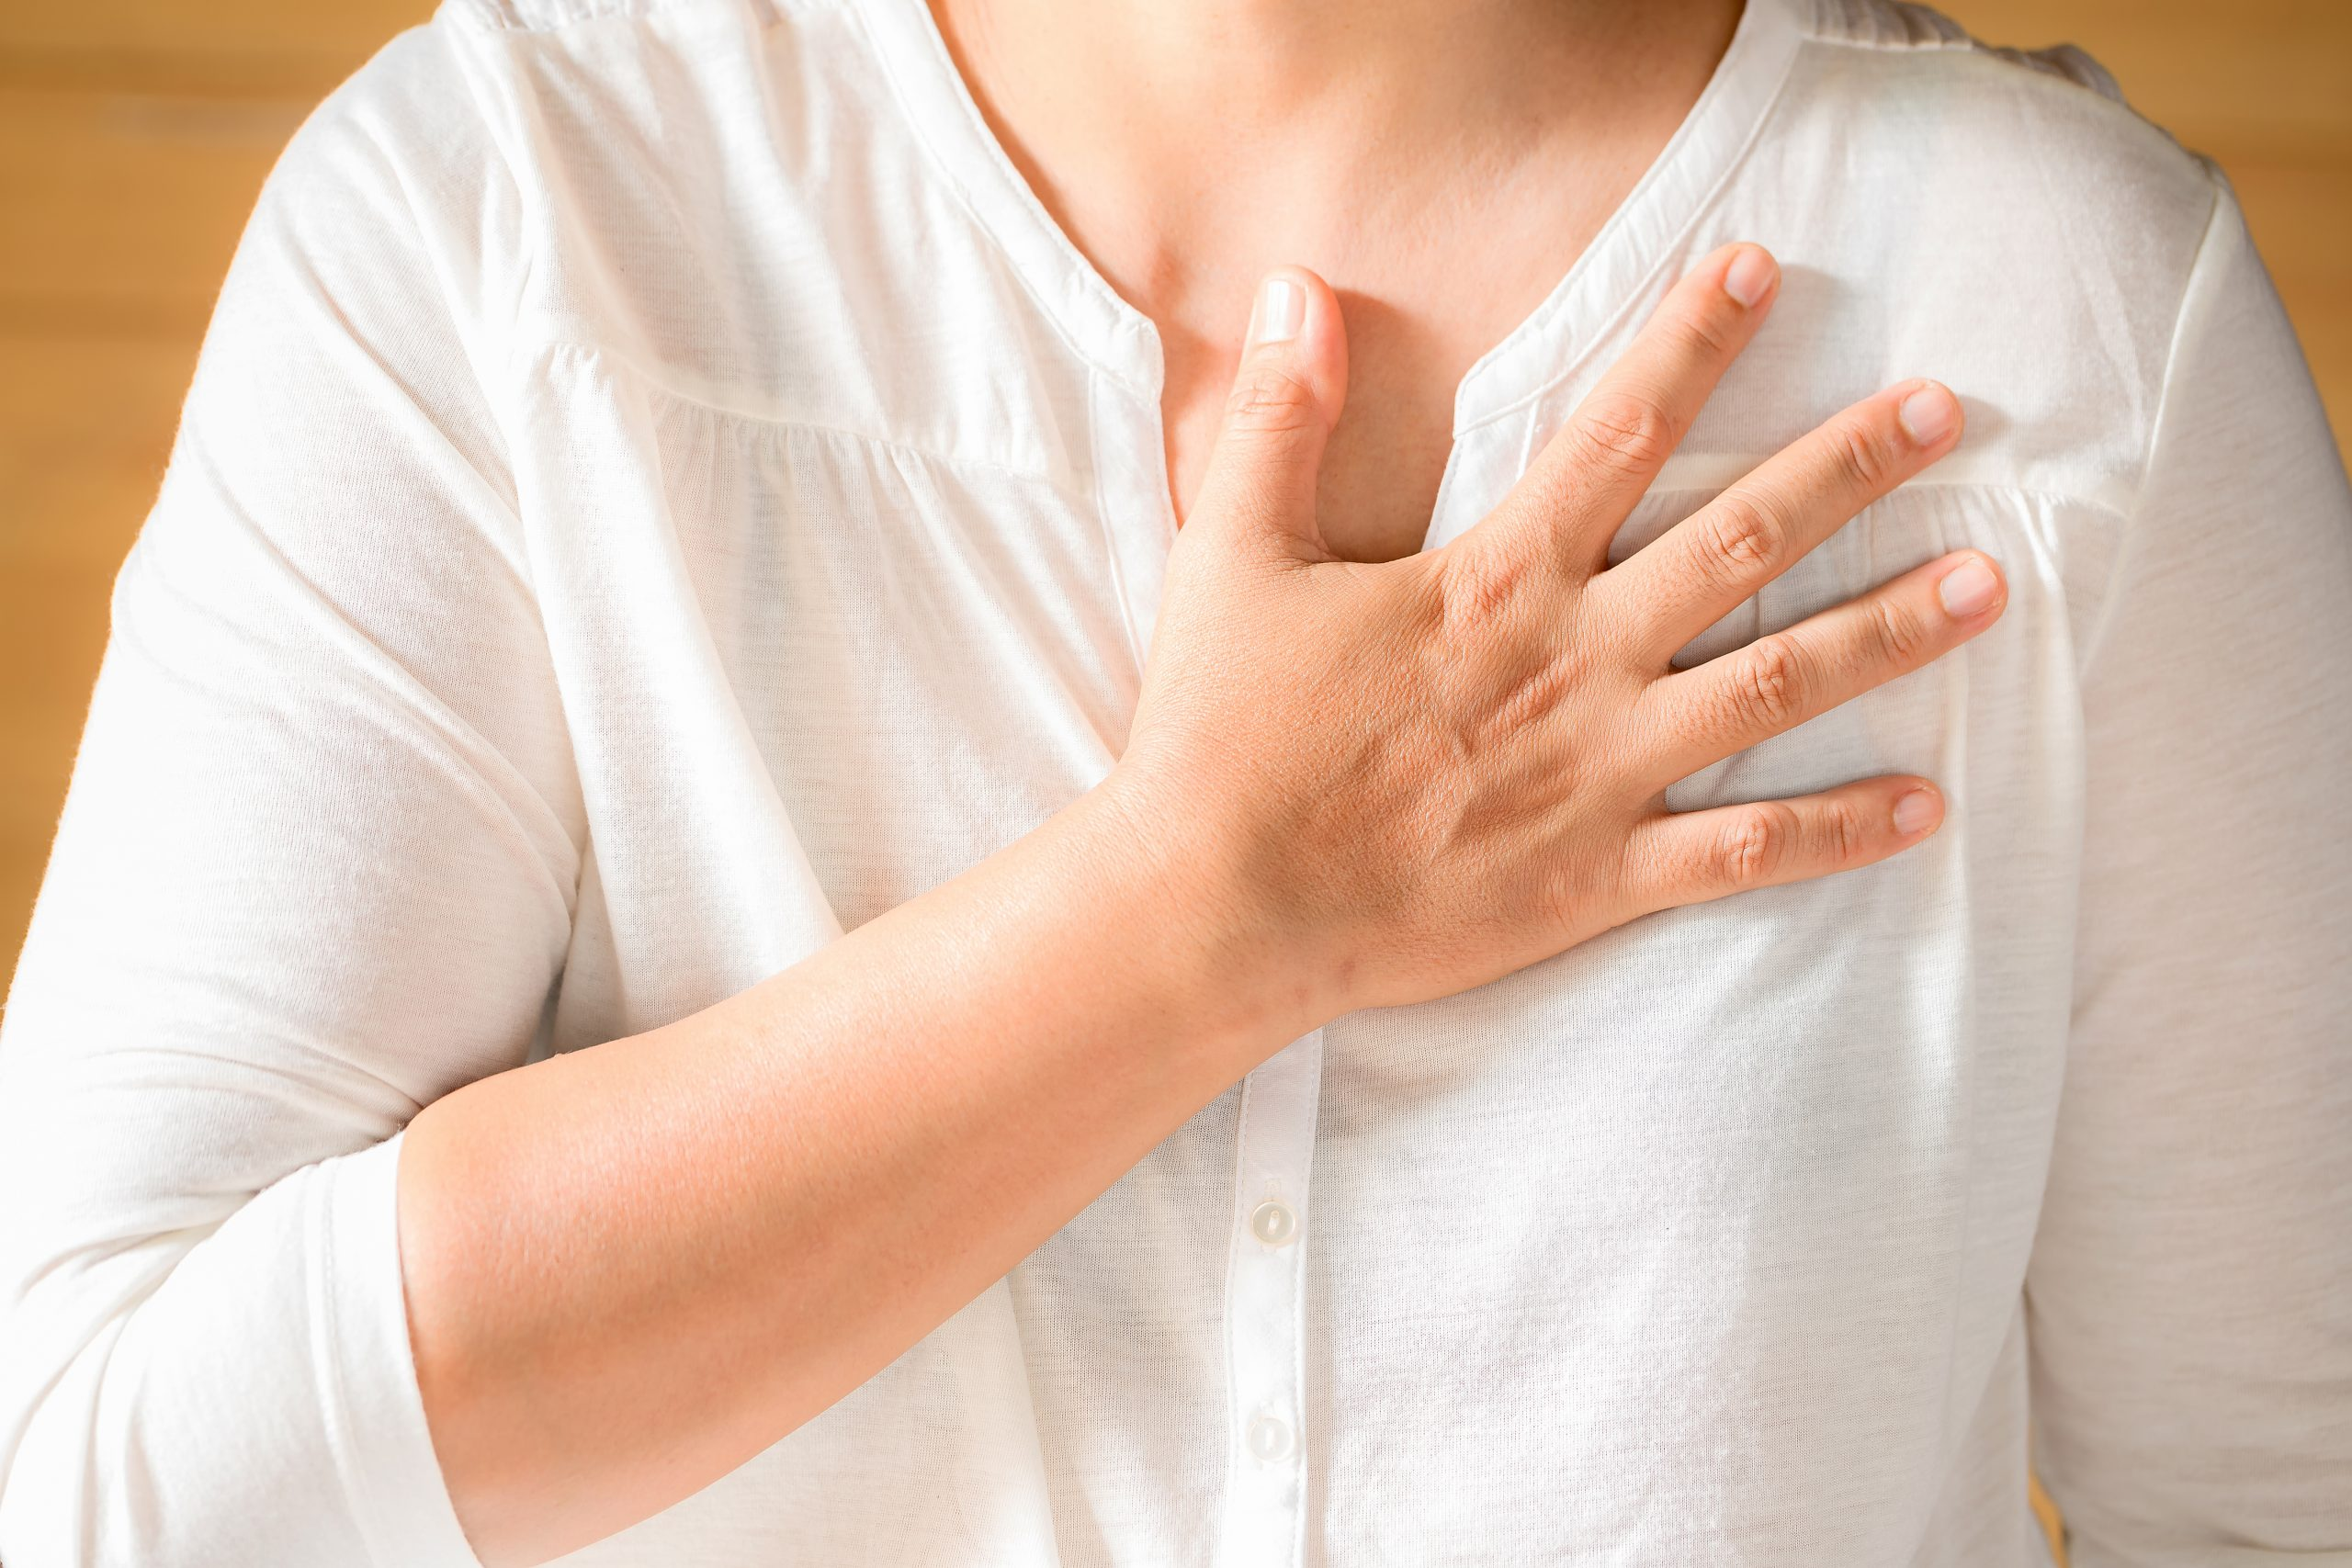 When should I go to the doctor for chest pain